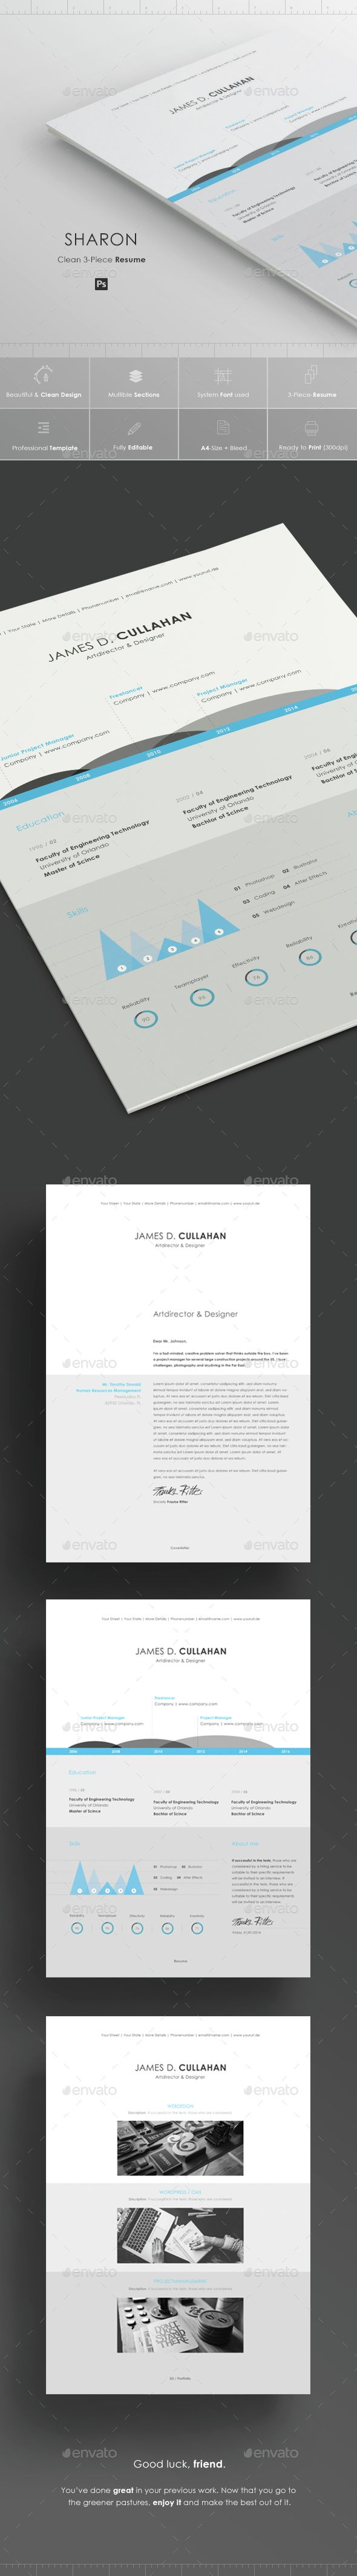 police resume template%0A Infographic Resume